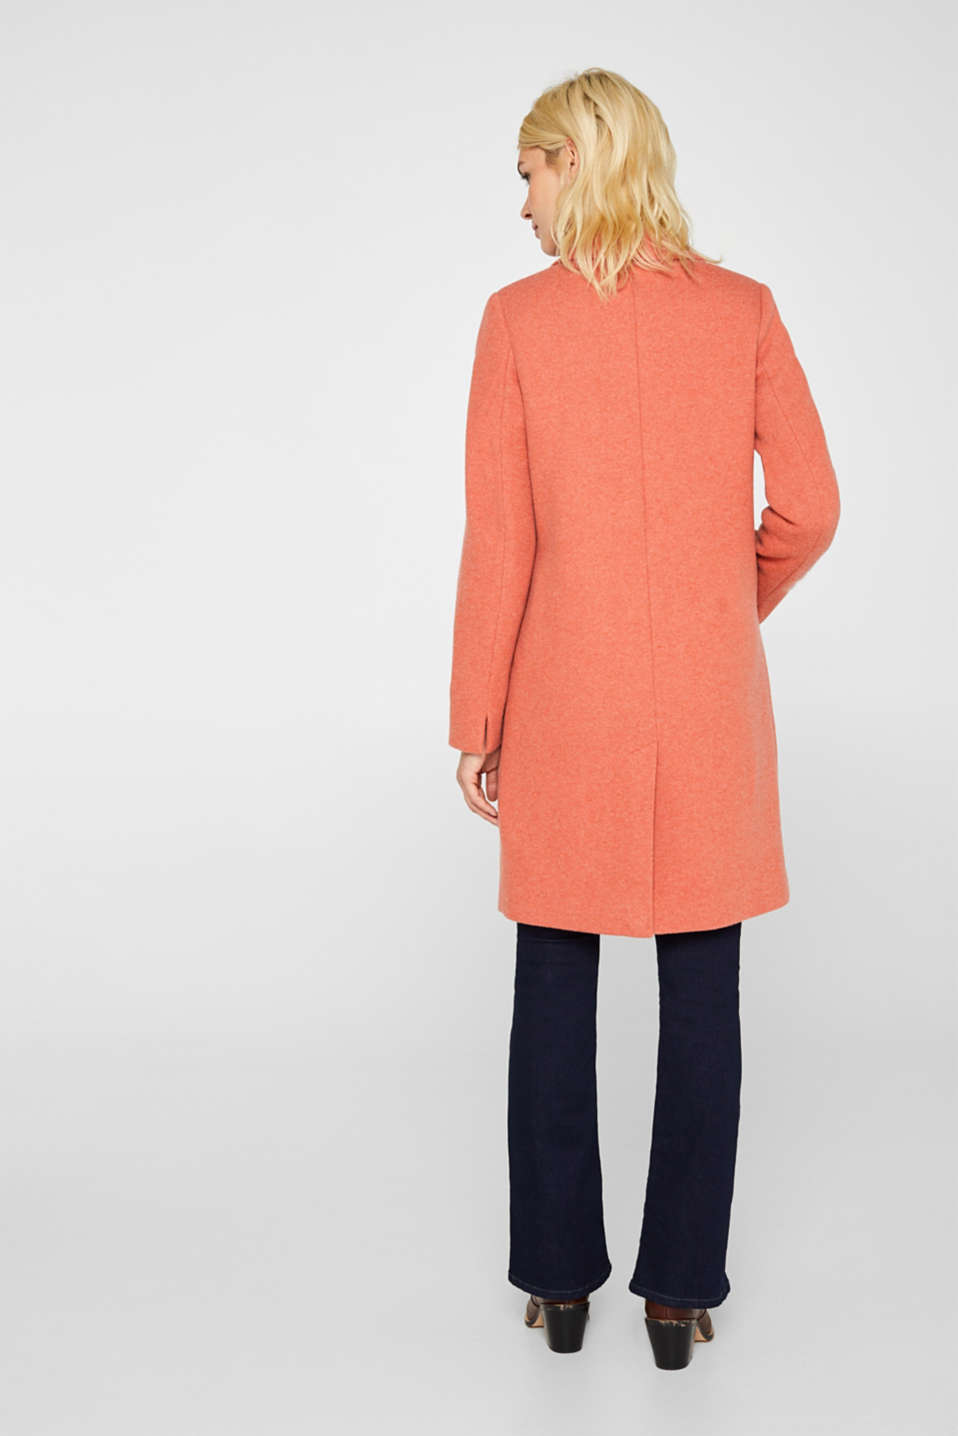 Made of blended wool: Coat in a knit look, BURNT ORANGE, detail image number 3